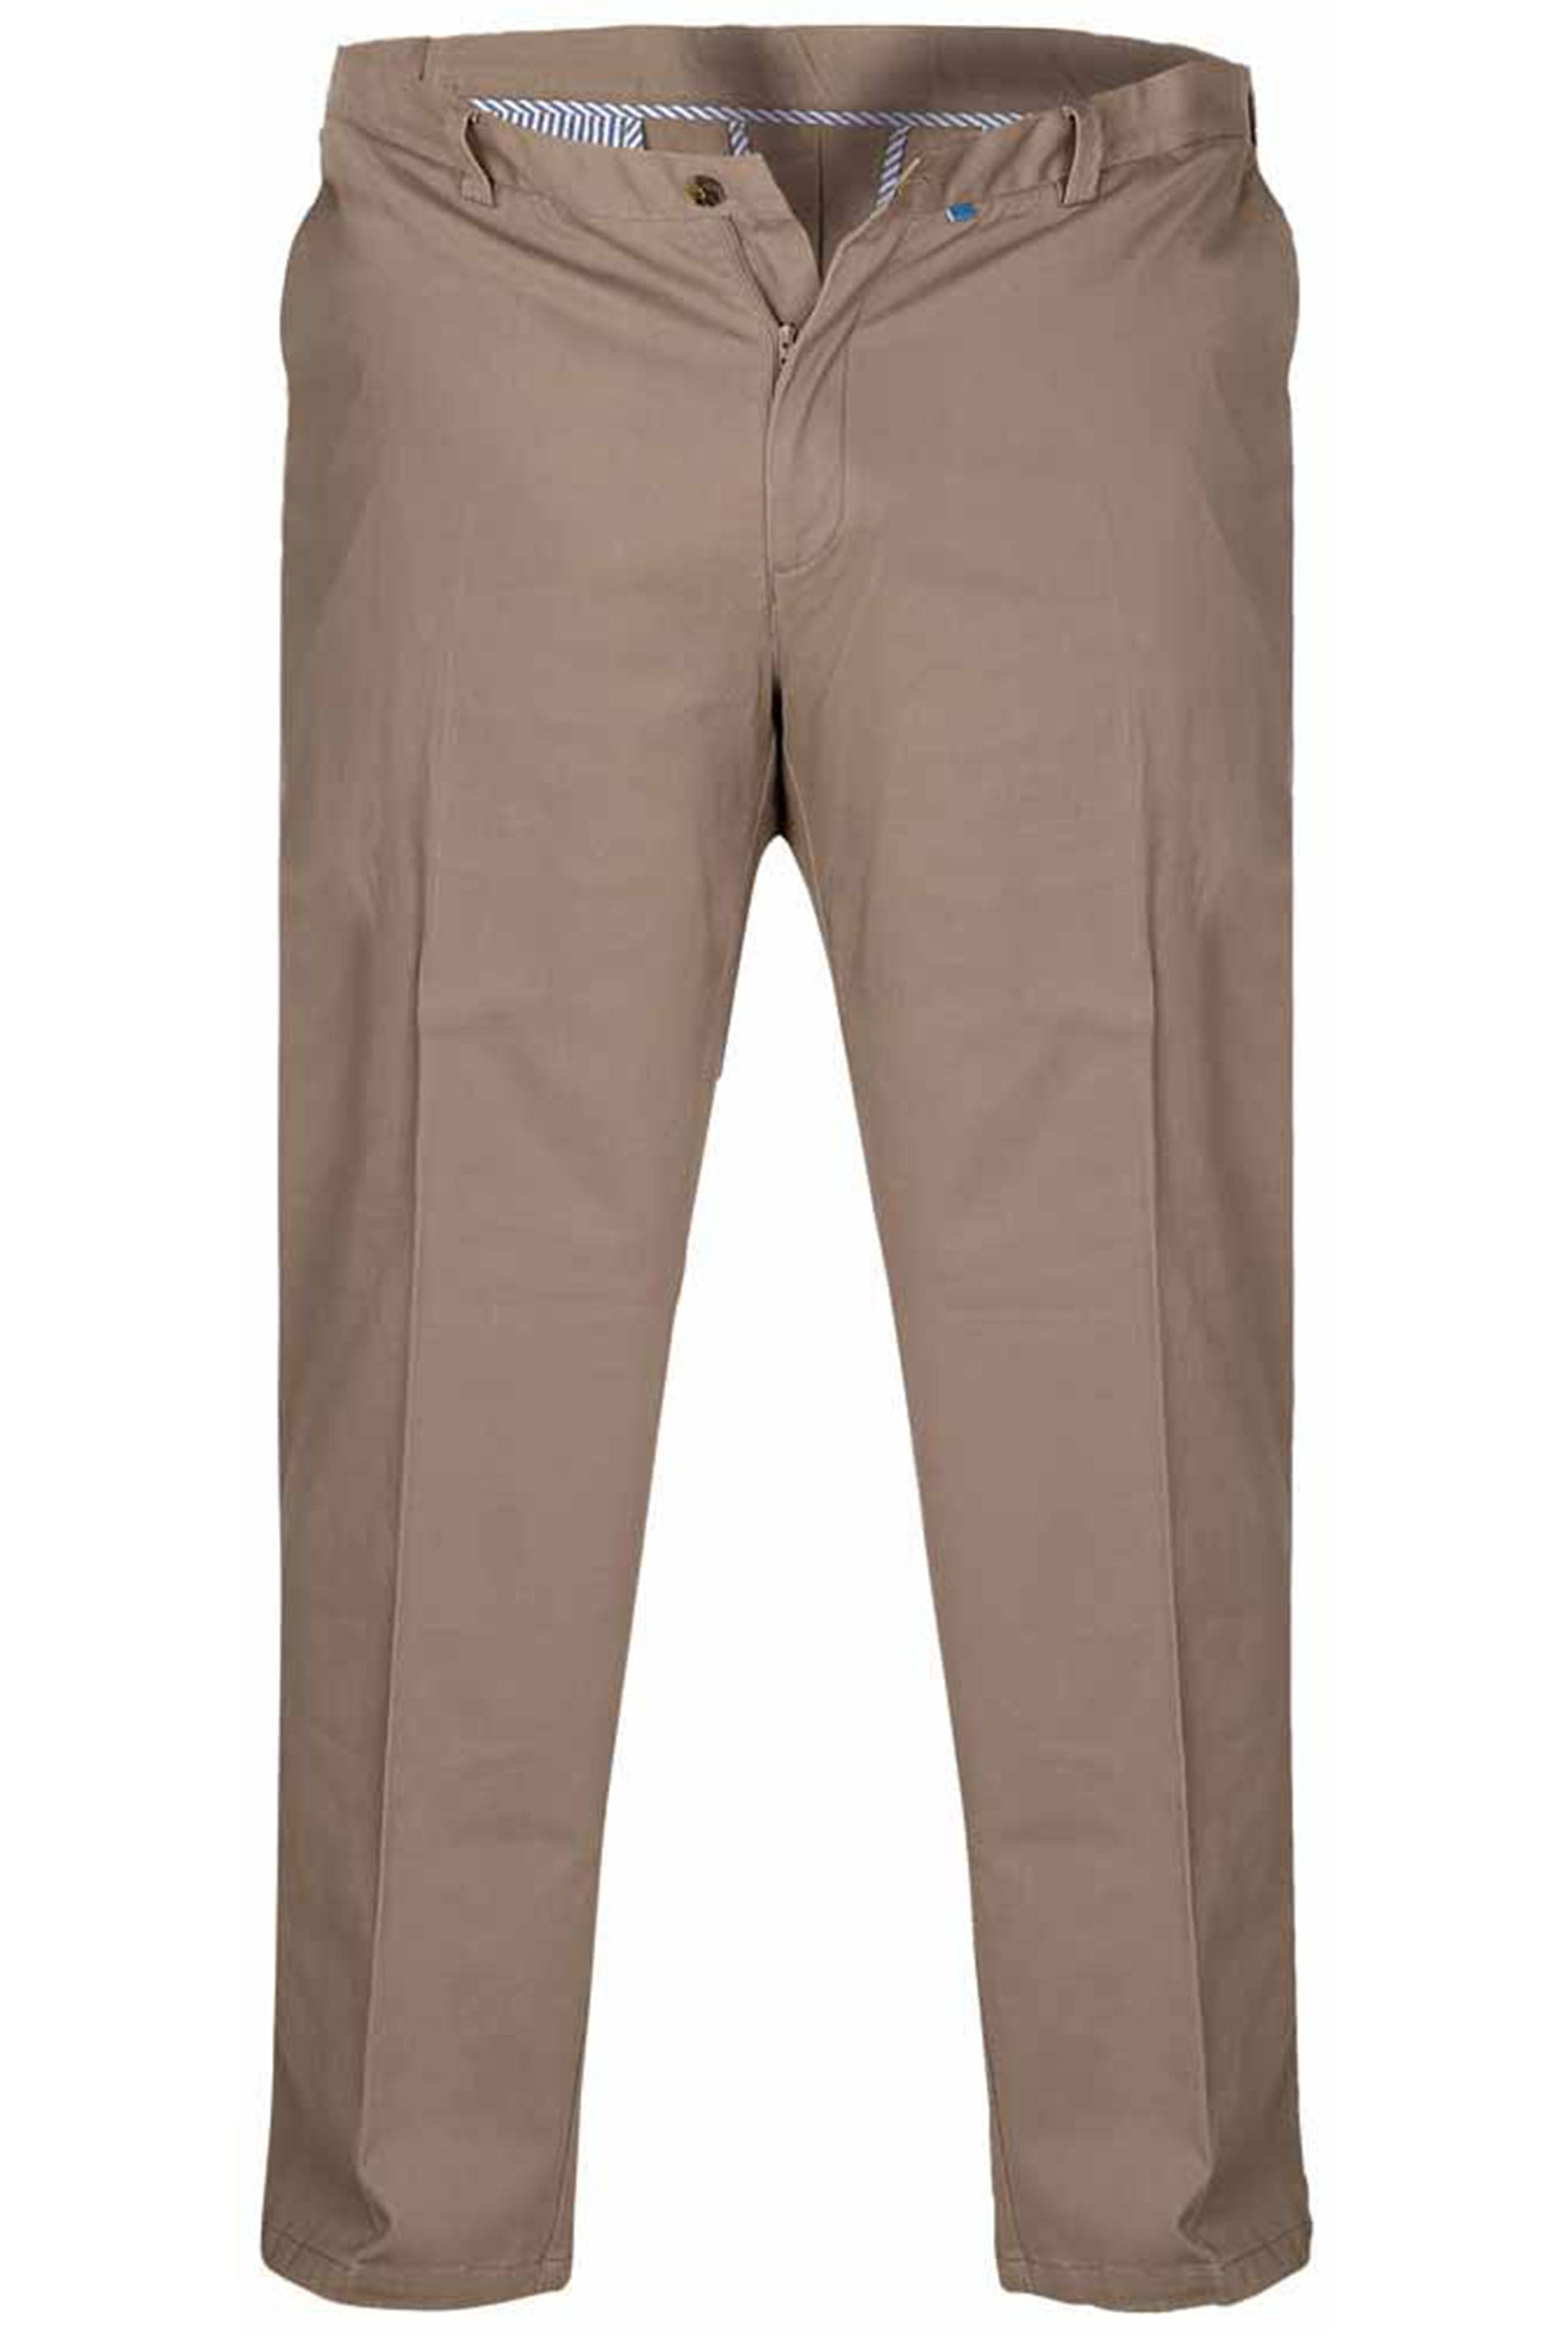 D555 Stone Extendable Waist Stretch Chinos